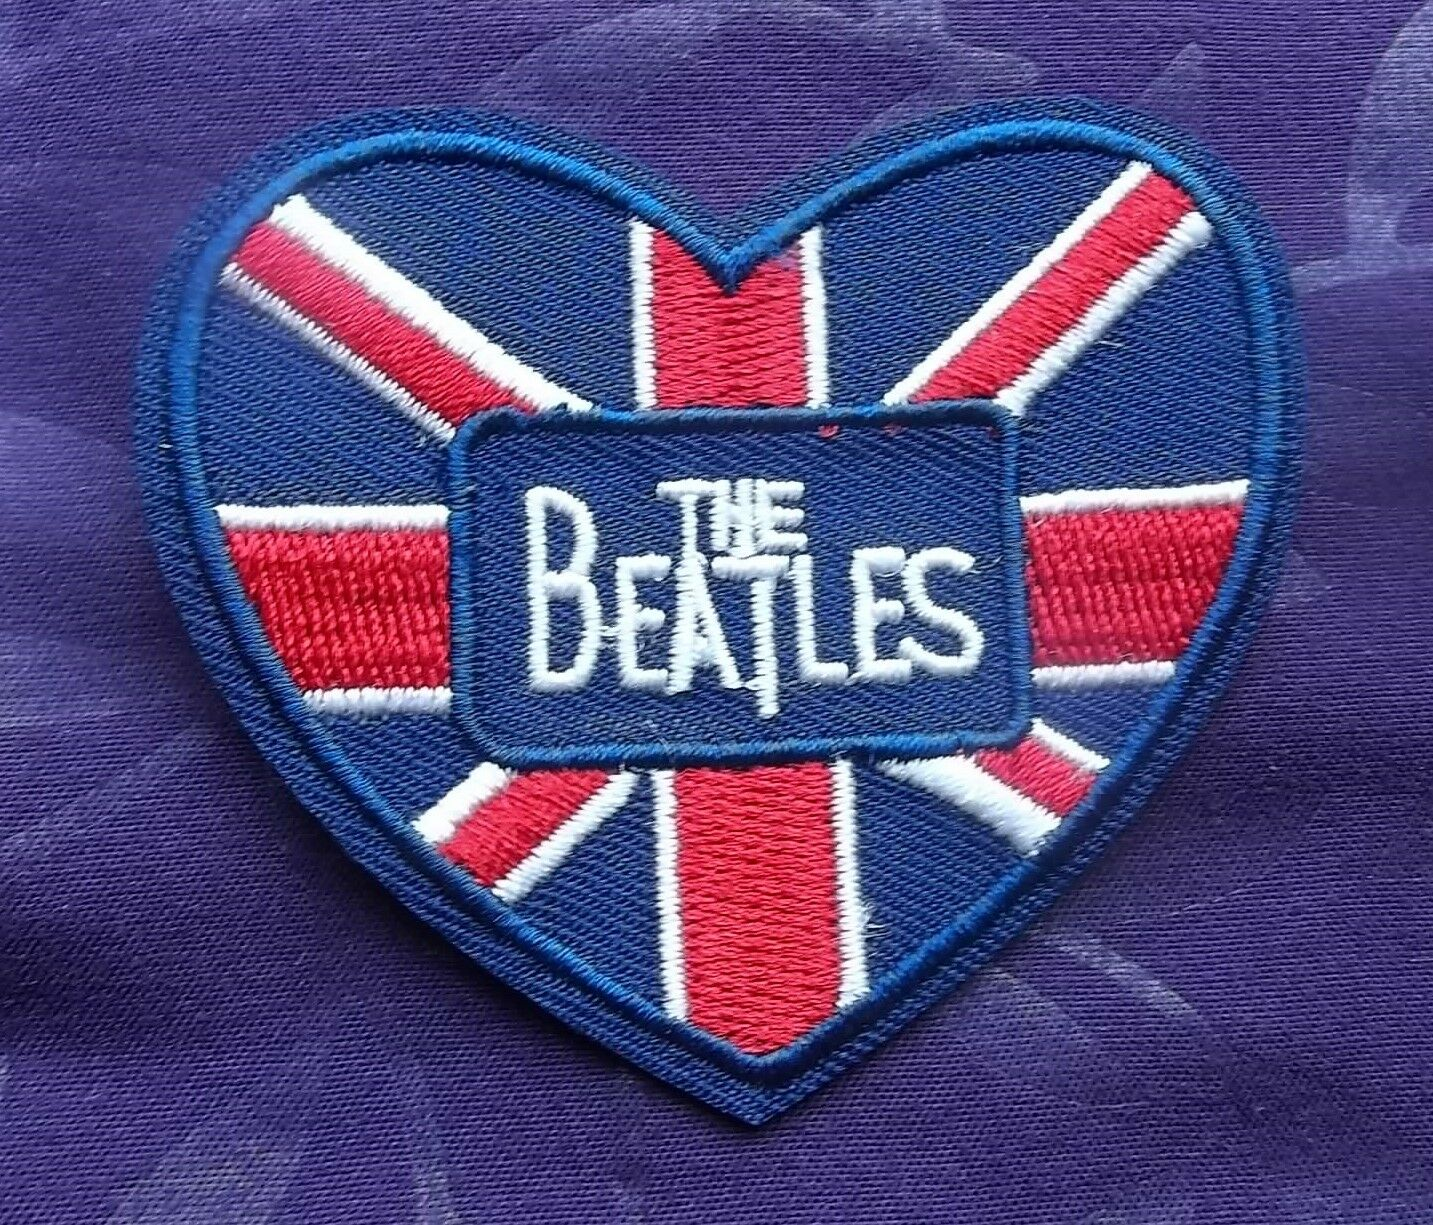 The beatles embroidered patch heart uk flag john lennon paul picture 1 of 1 buycottarizona